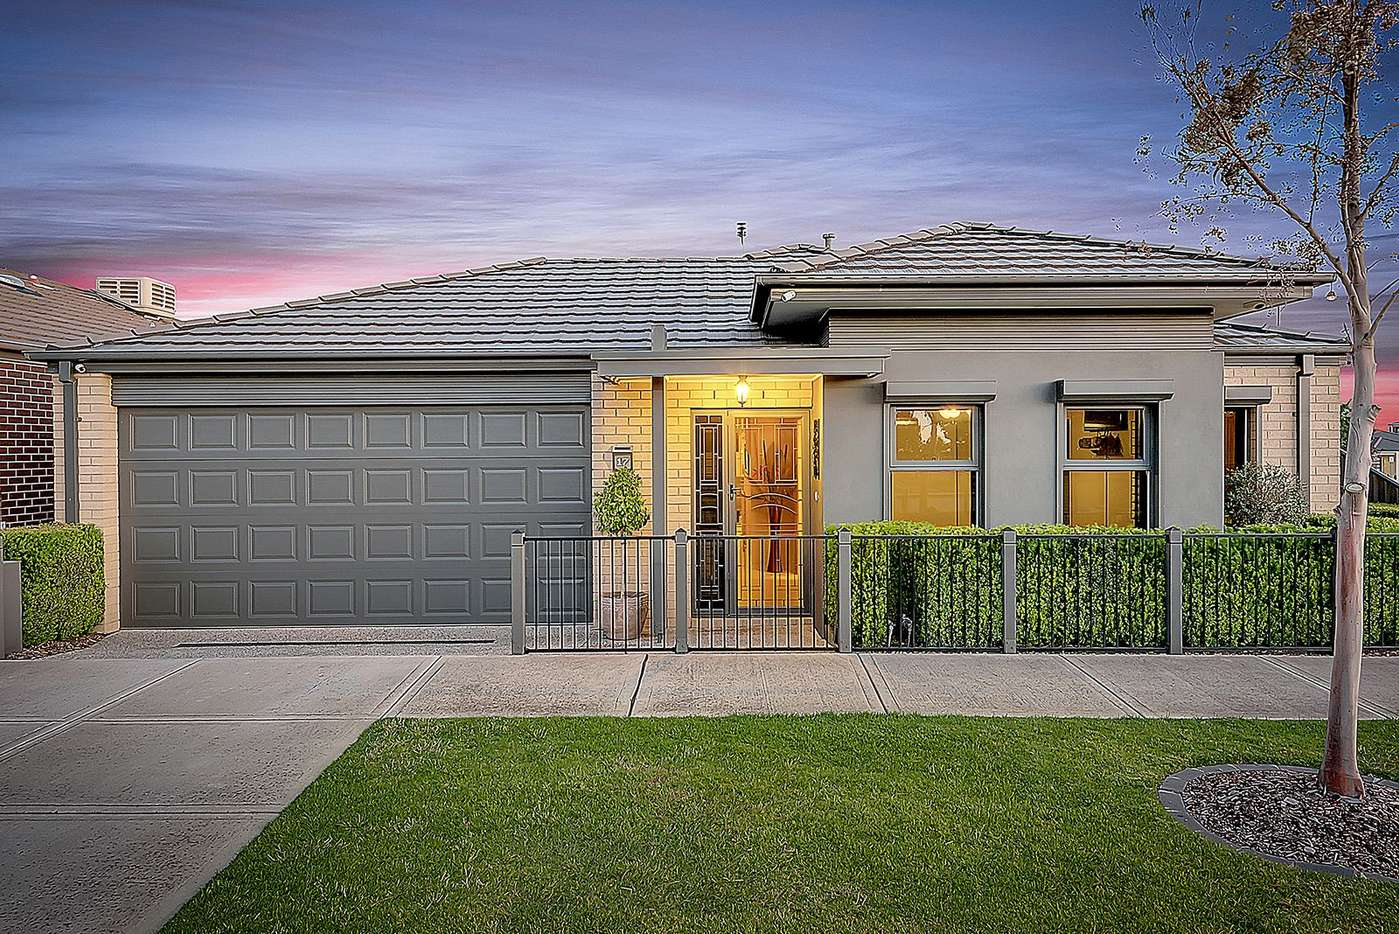 Main view of Homely house listing, 17 Thoresby Circuit, Craigieburn, VIC 3064